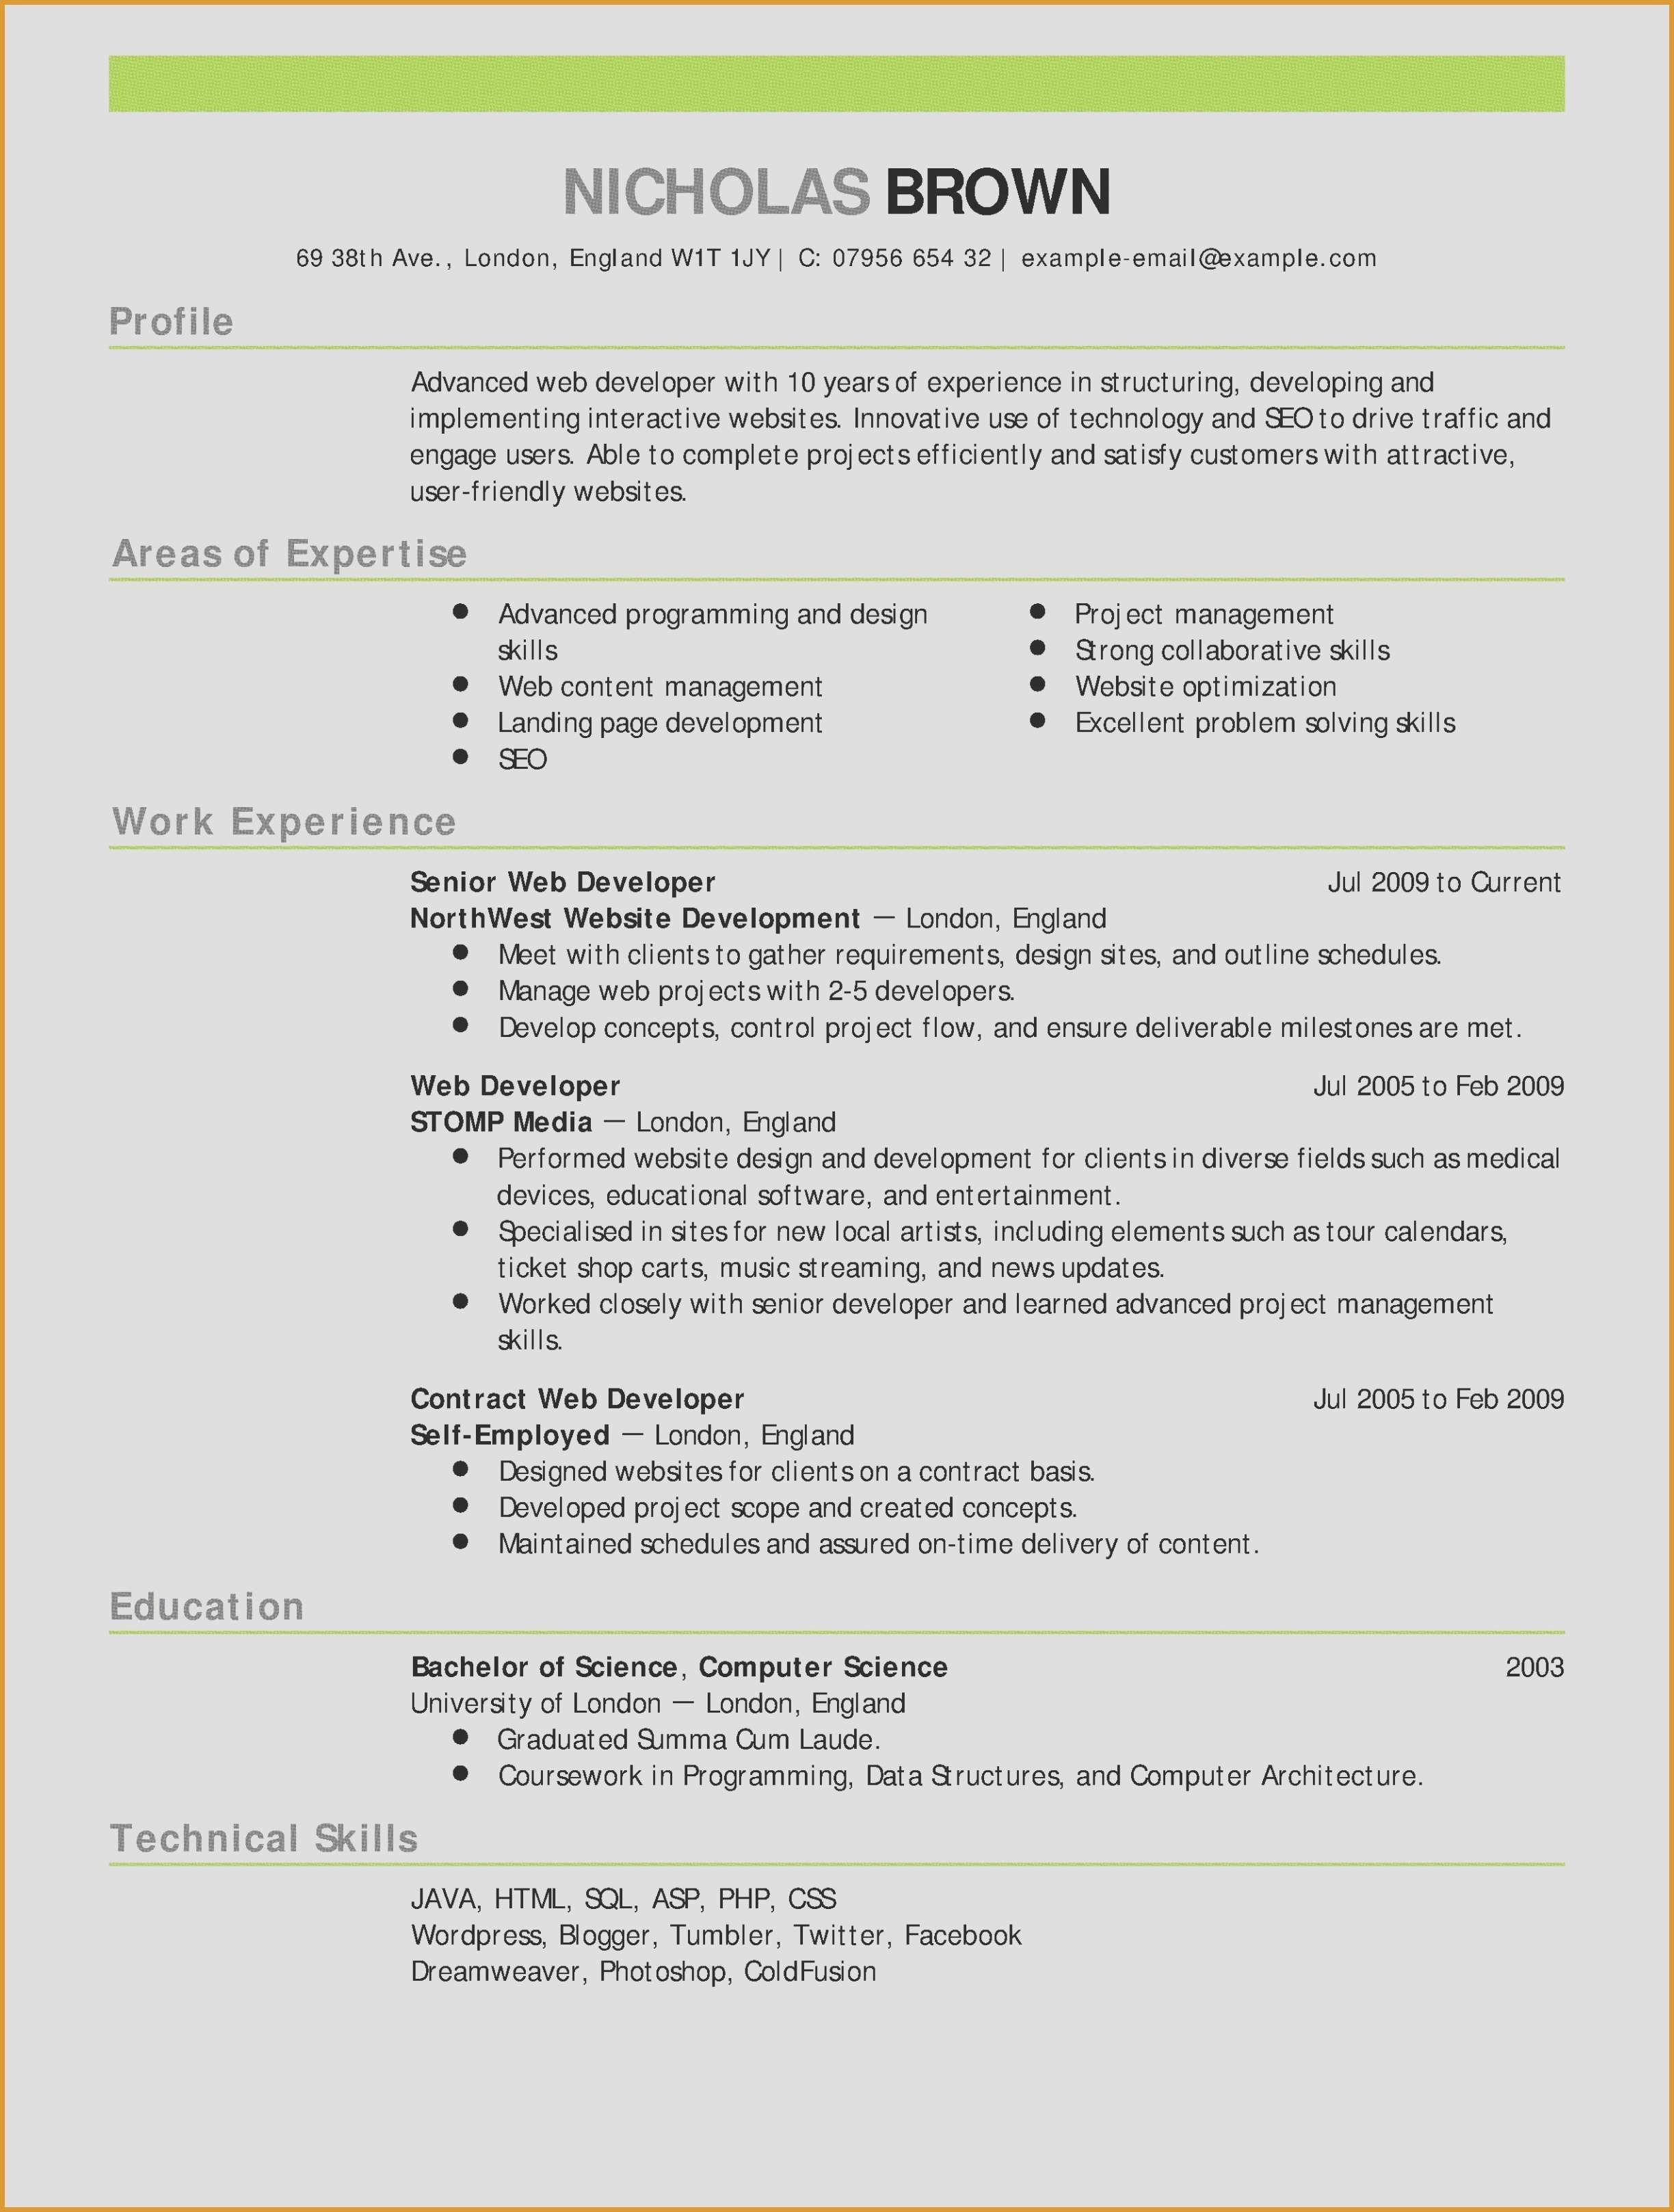 Resume Building Services - Resume Building Services Awesome Resume Builder software Luxury